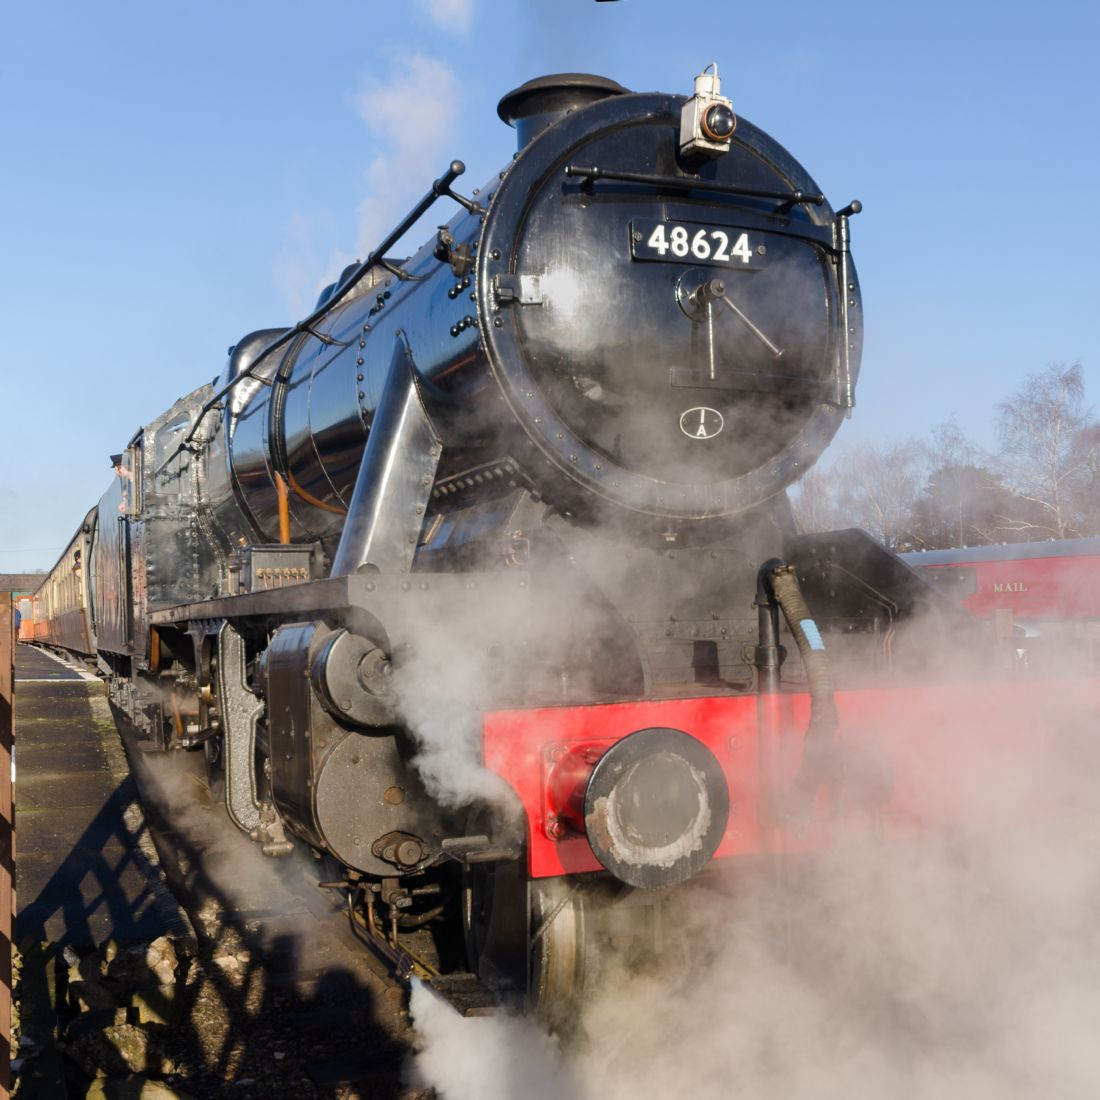 Steve Stamford | 48624 Steam locomotive